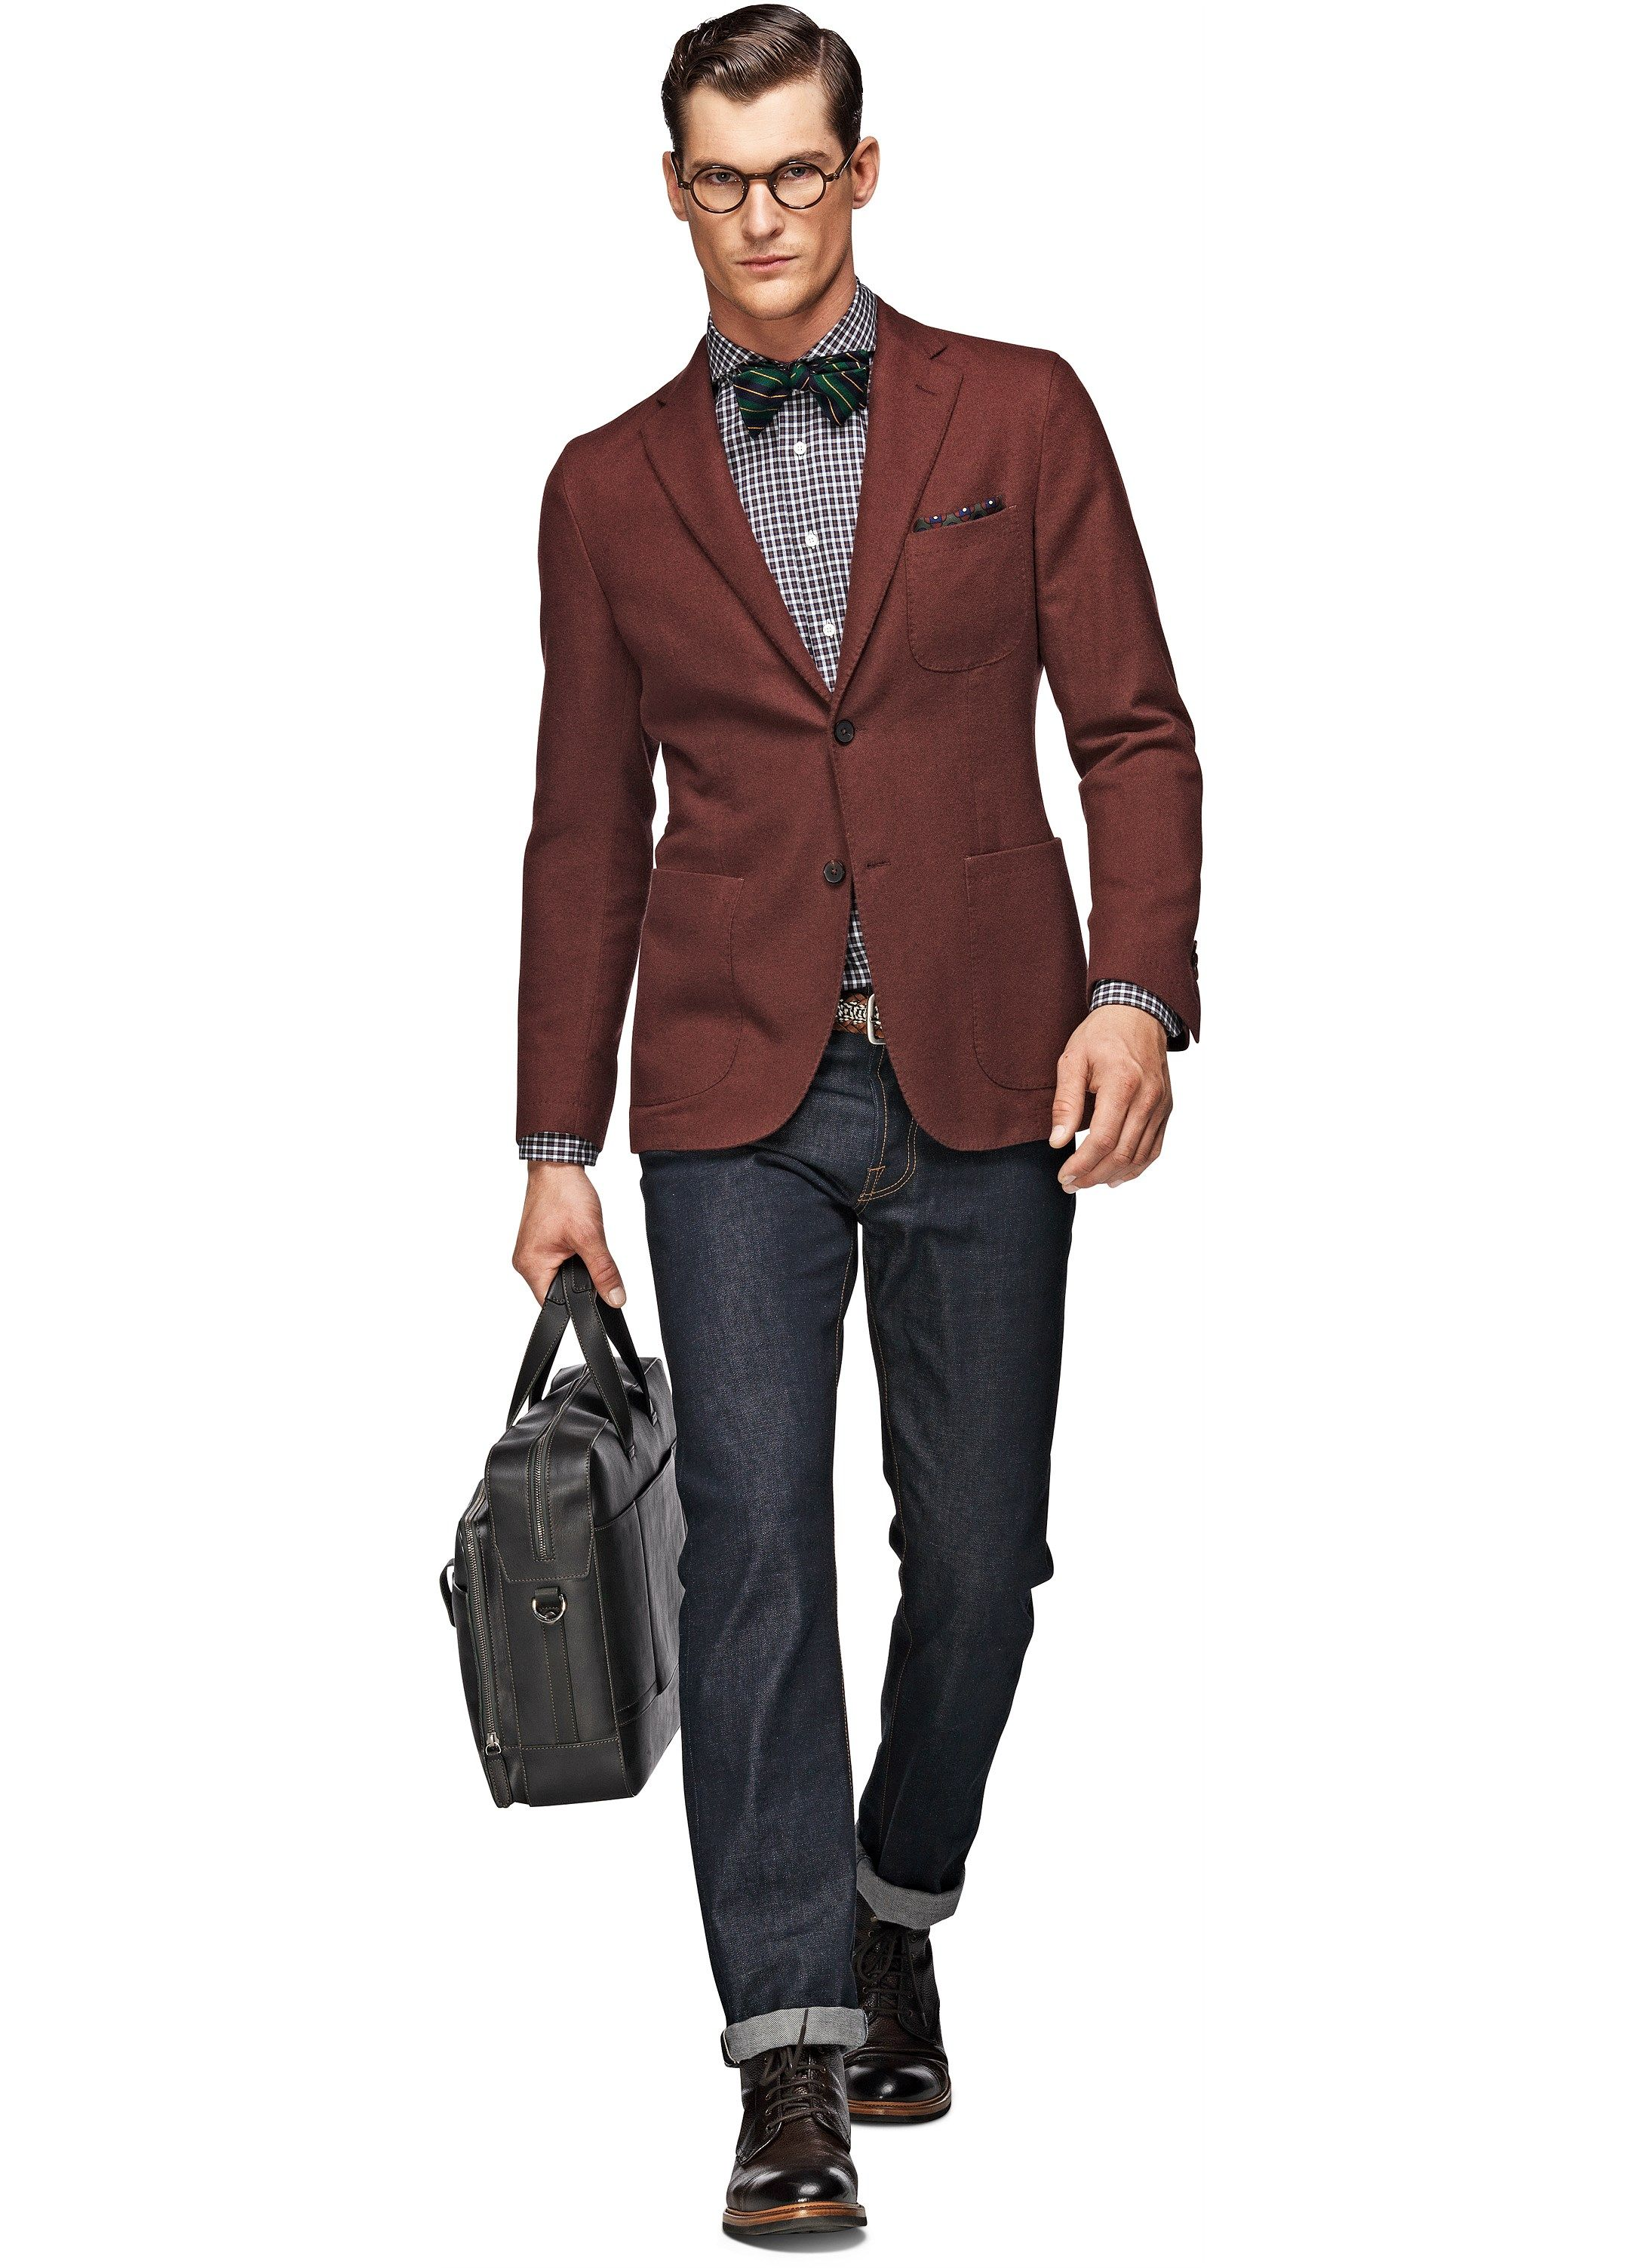 17 Best images about Burgundy Sports Jacket on Pinterest ...